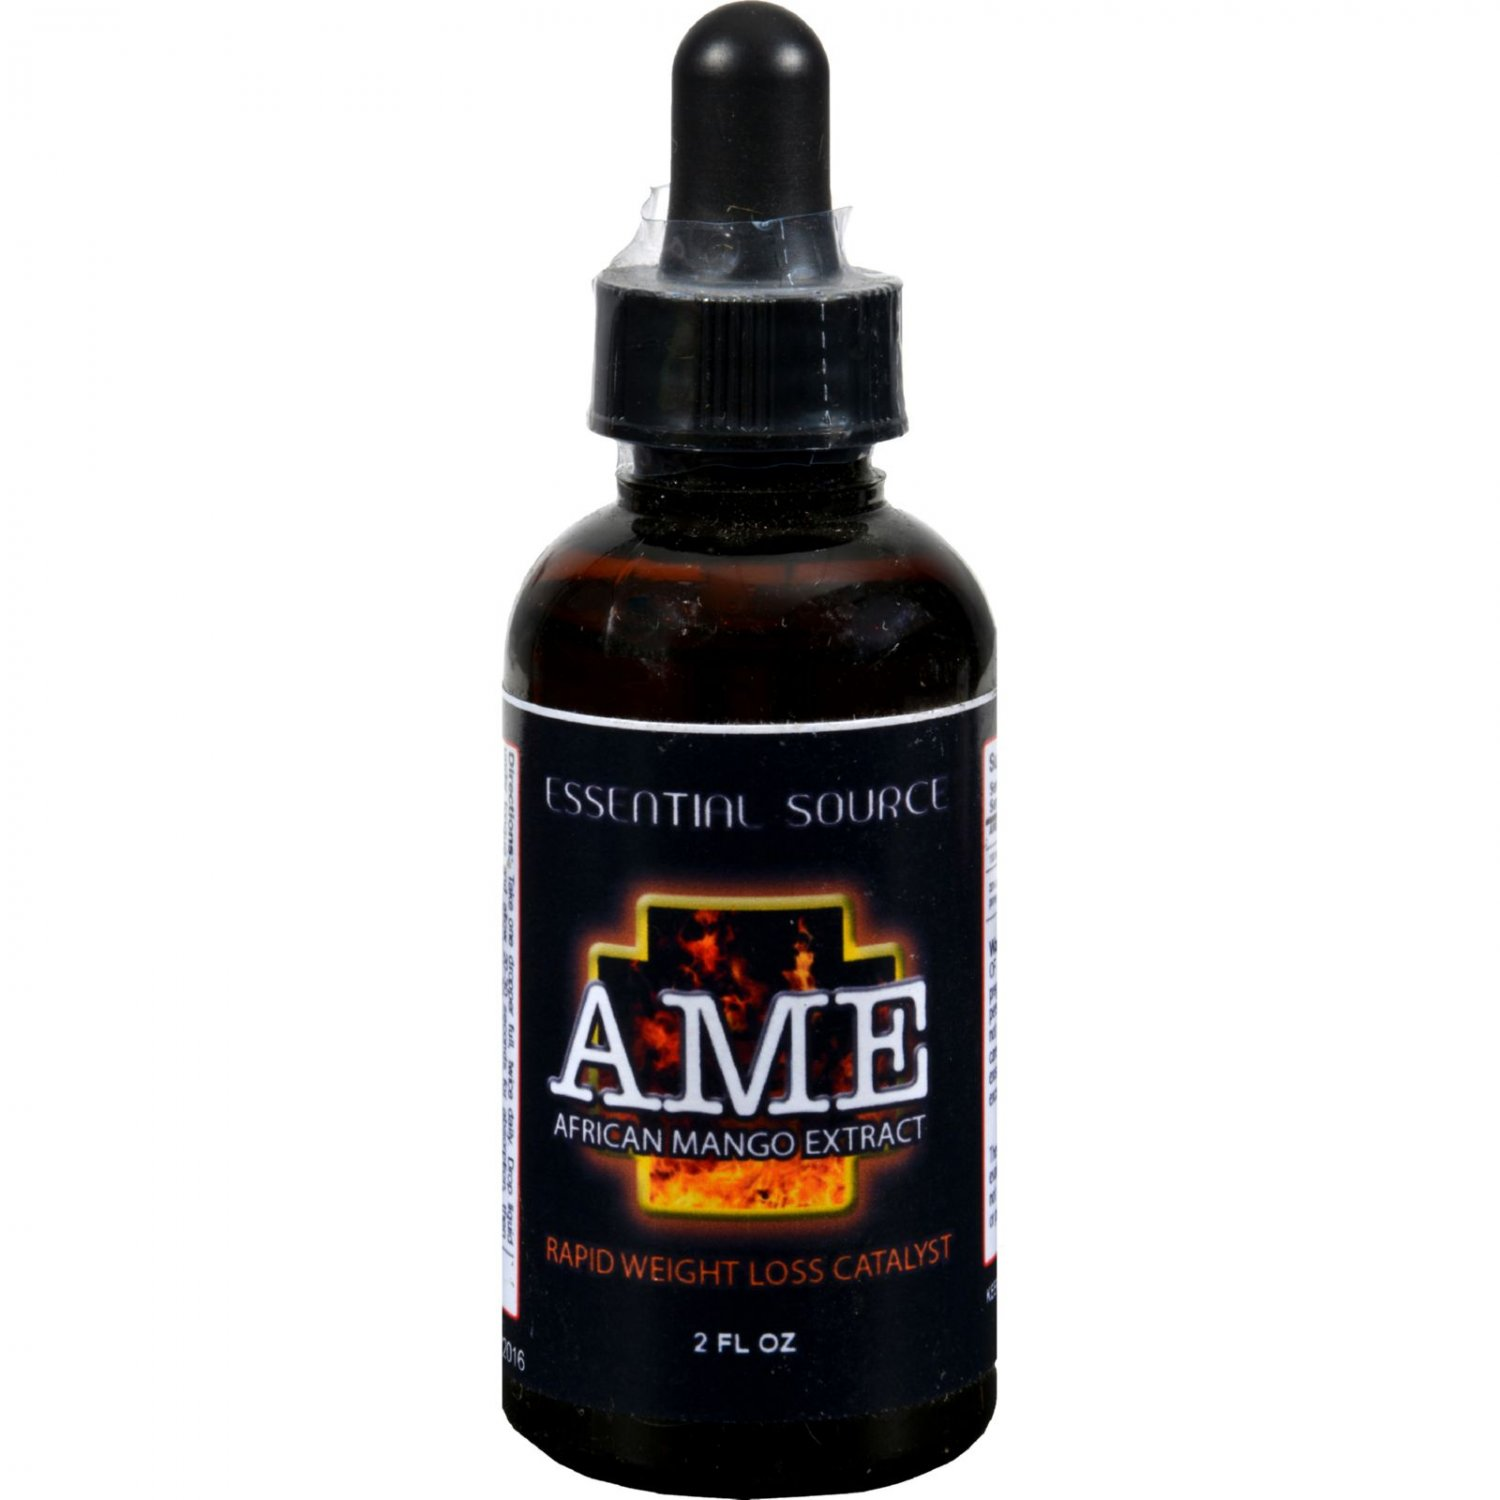 Essential Source African Mango Extract - 2 oz